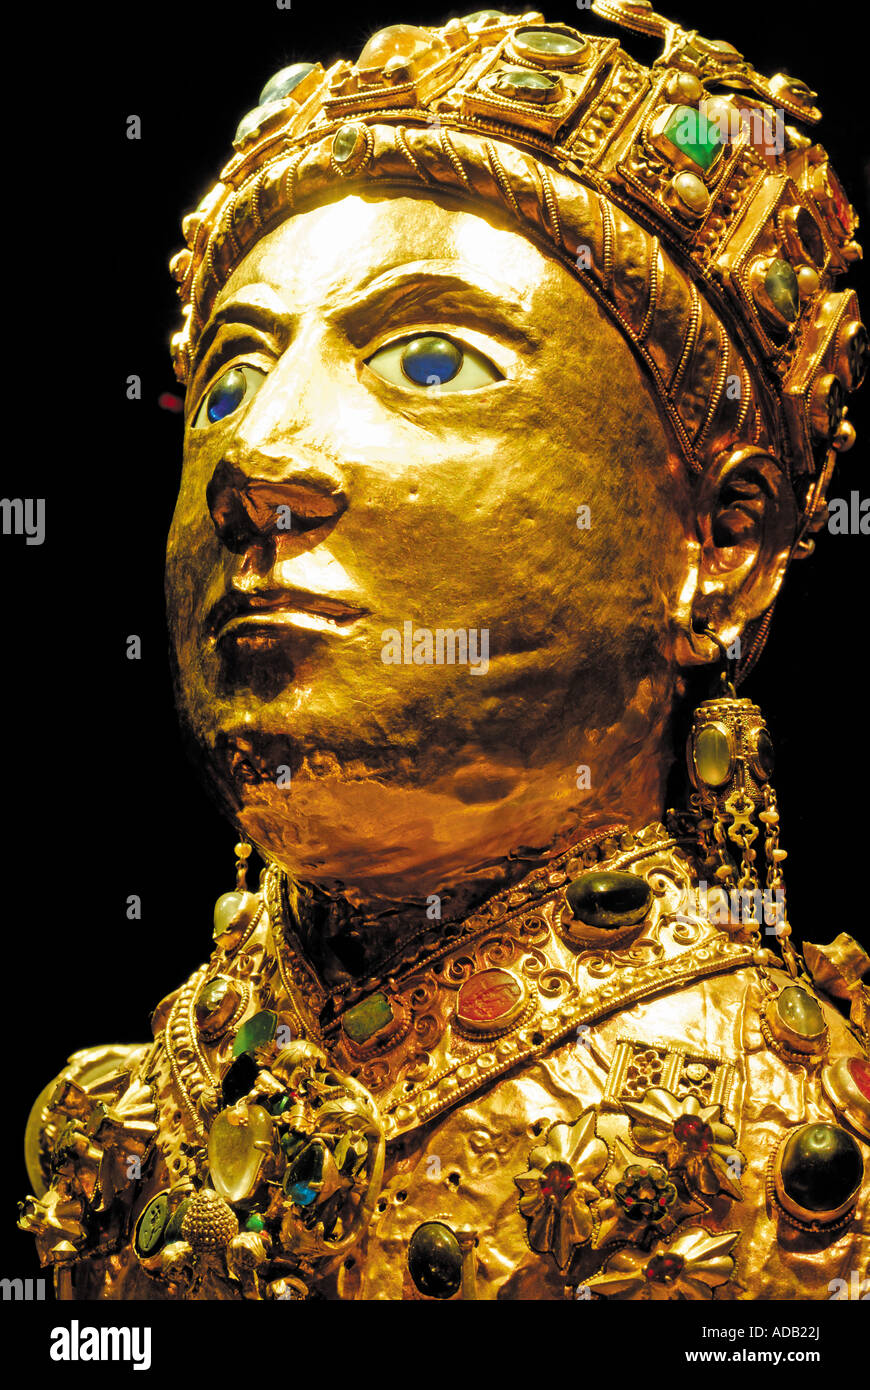 Golden statue Majesty of St. Foy, Basilica of St. Foy, Conques, Midi-Pyrenees, France - Stock Image